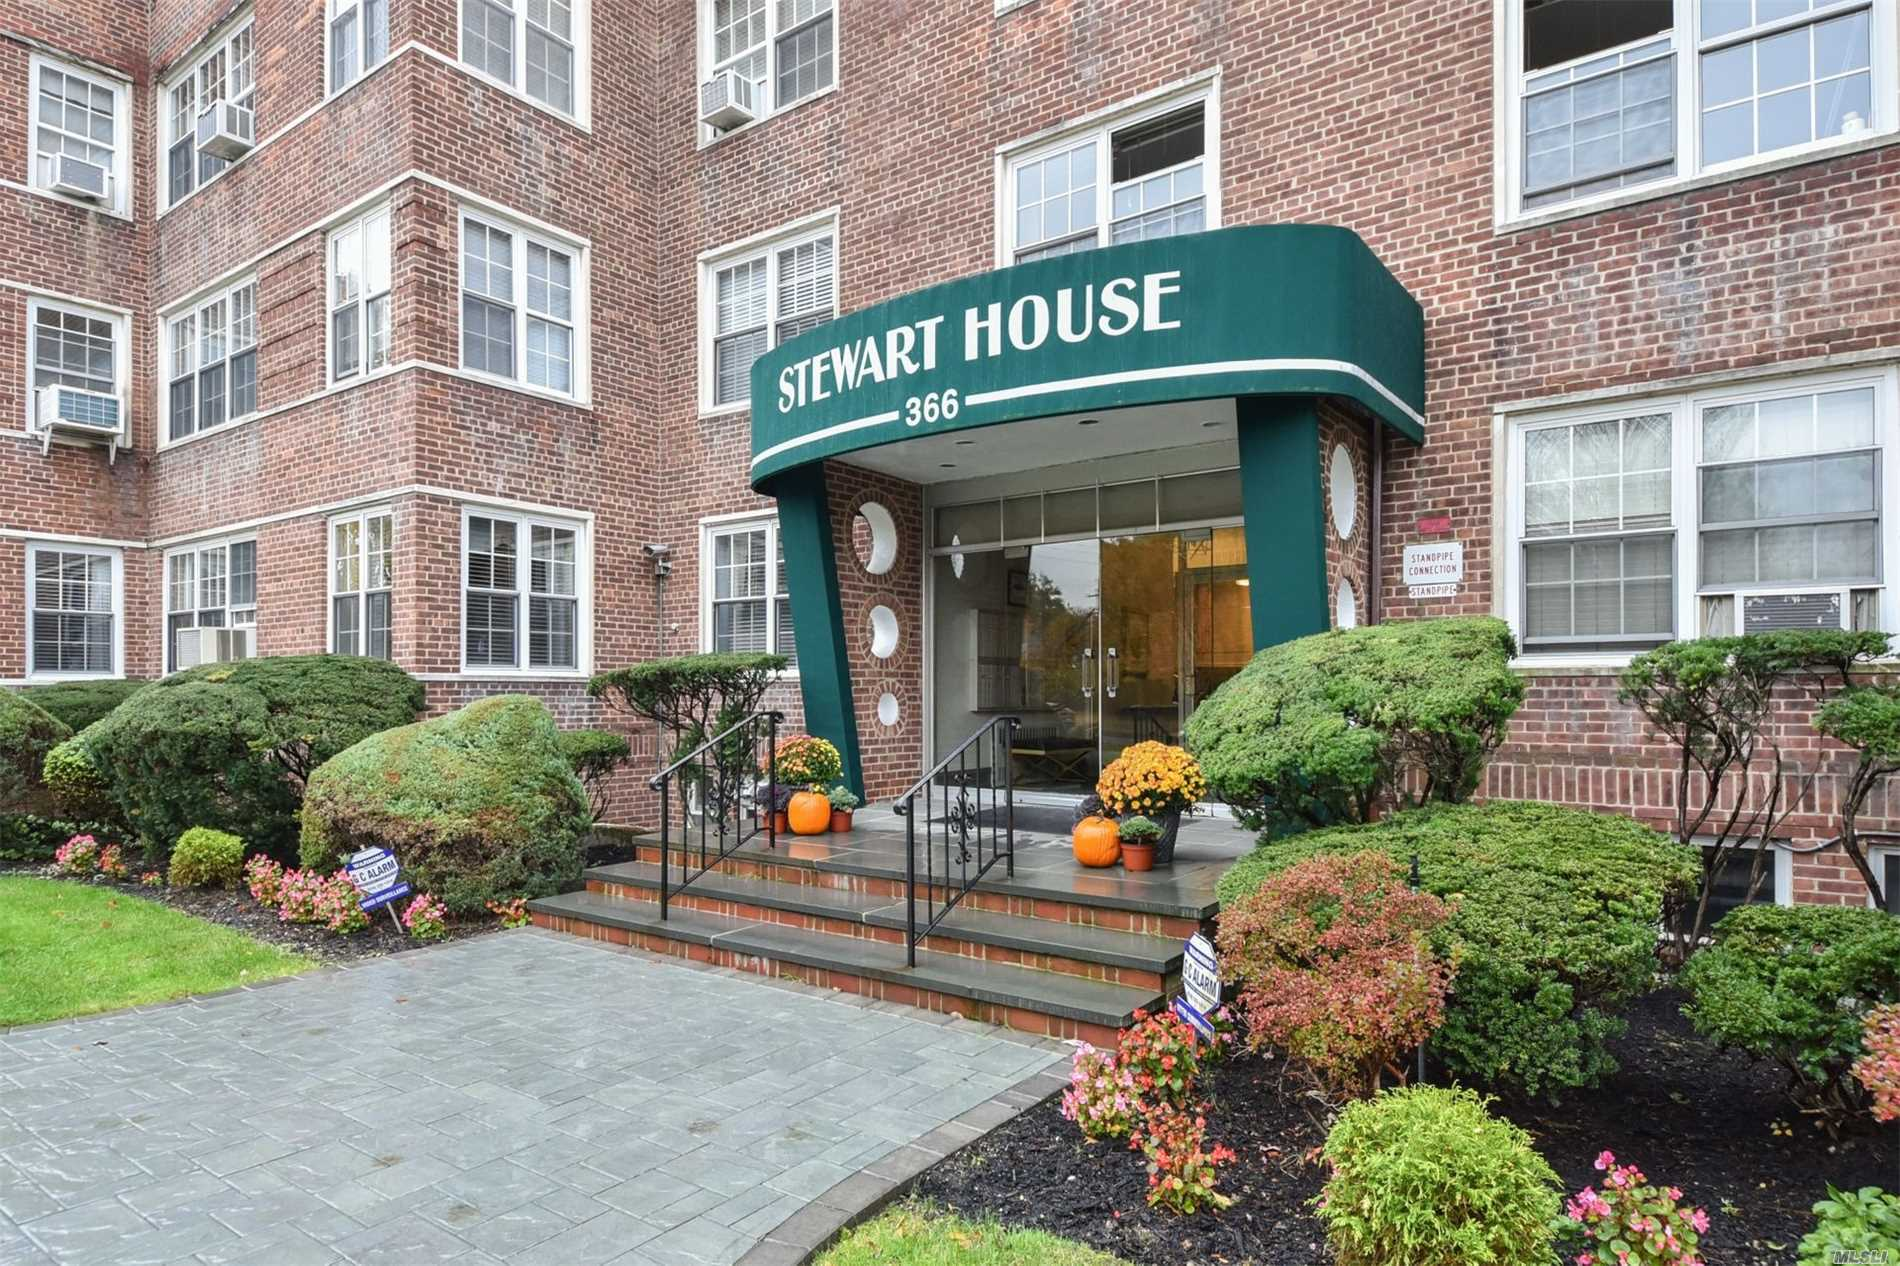 Property for sale at 366 Stewart Ave, Garden City,  NY 11530